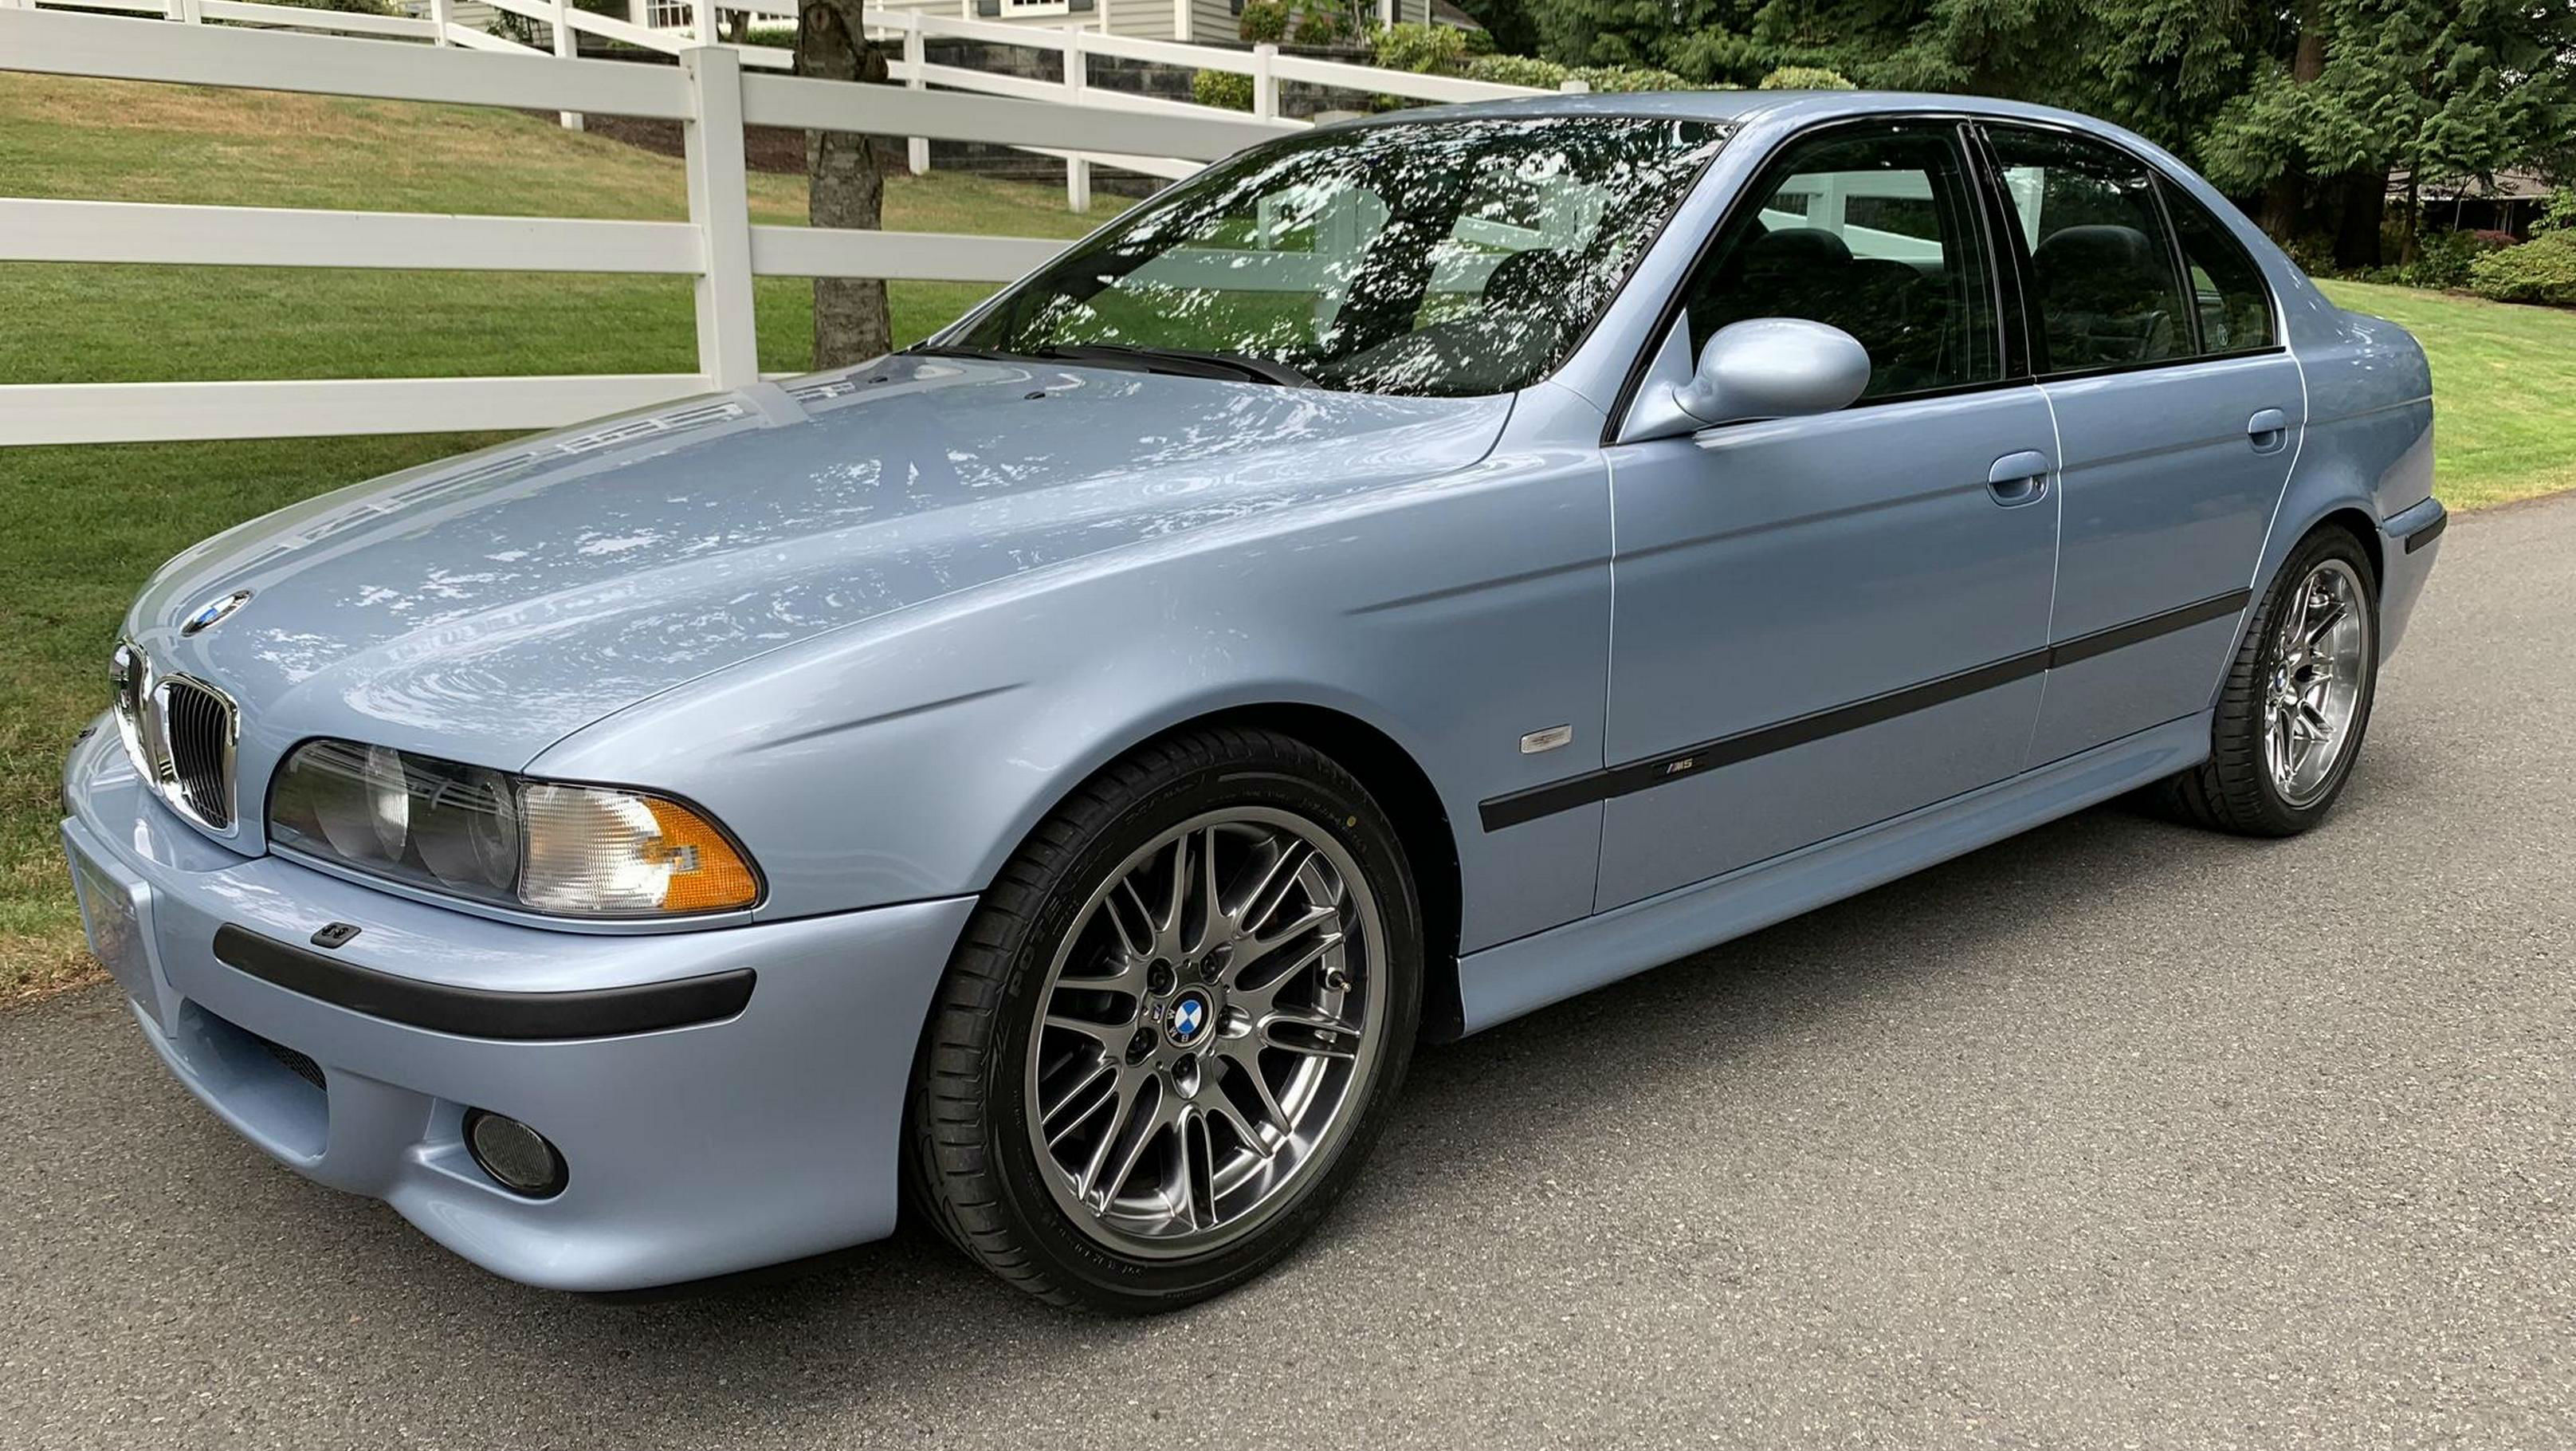 BMW E39 M5 >> This Nearly New 15k Mile E39 M5 Needs A New Home Wheels Ca